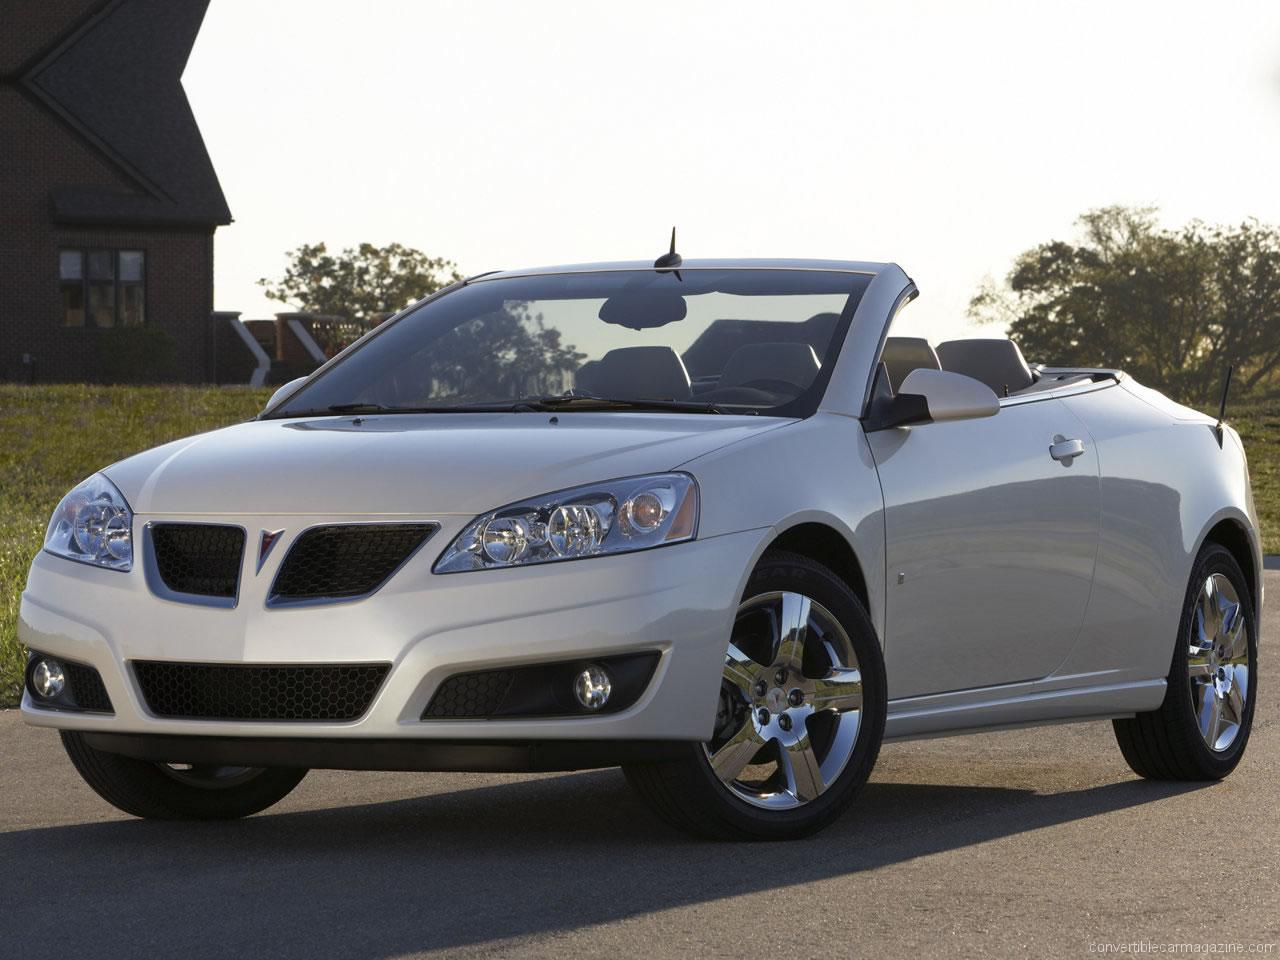 Pontiac G6 Convertible Buying Guide